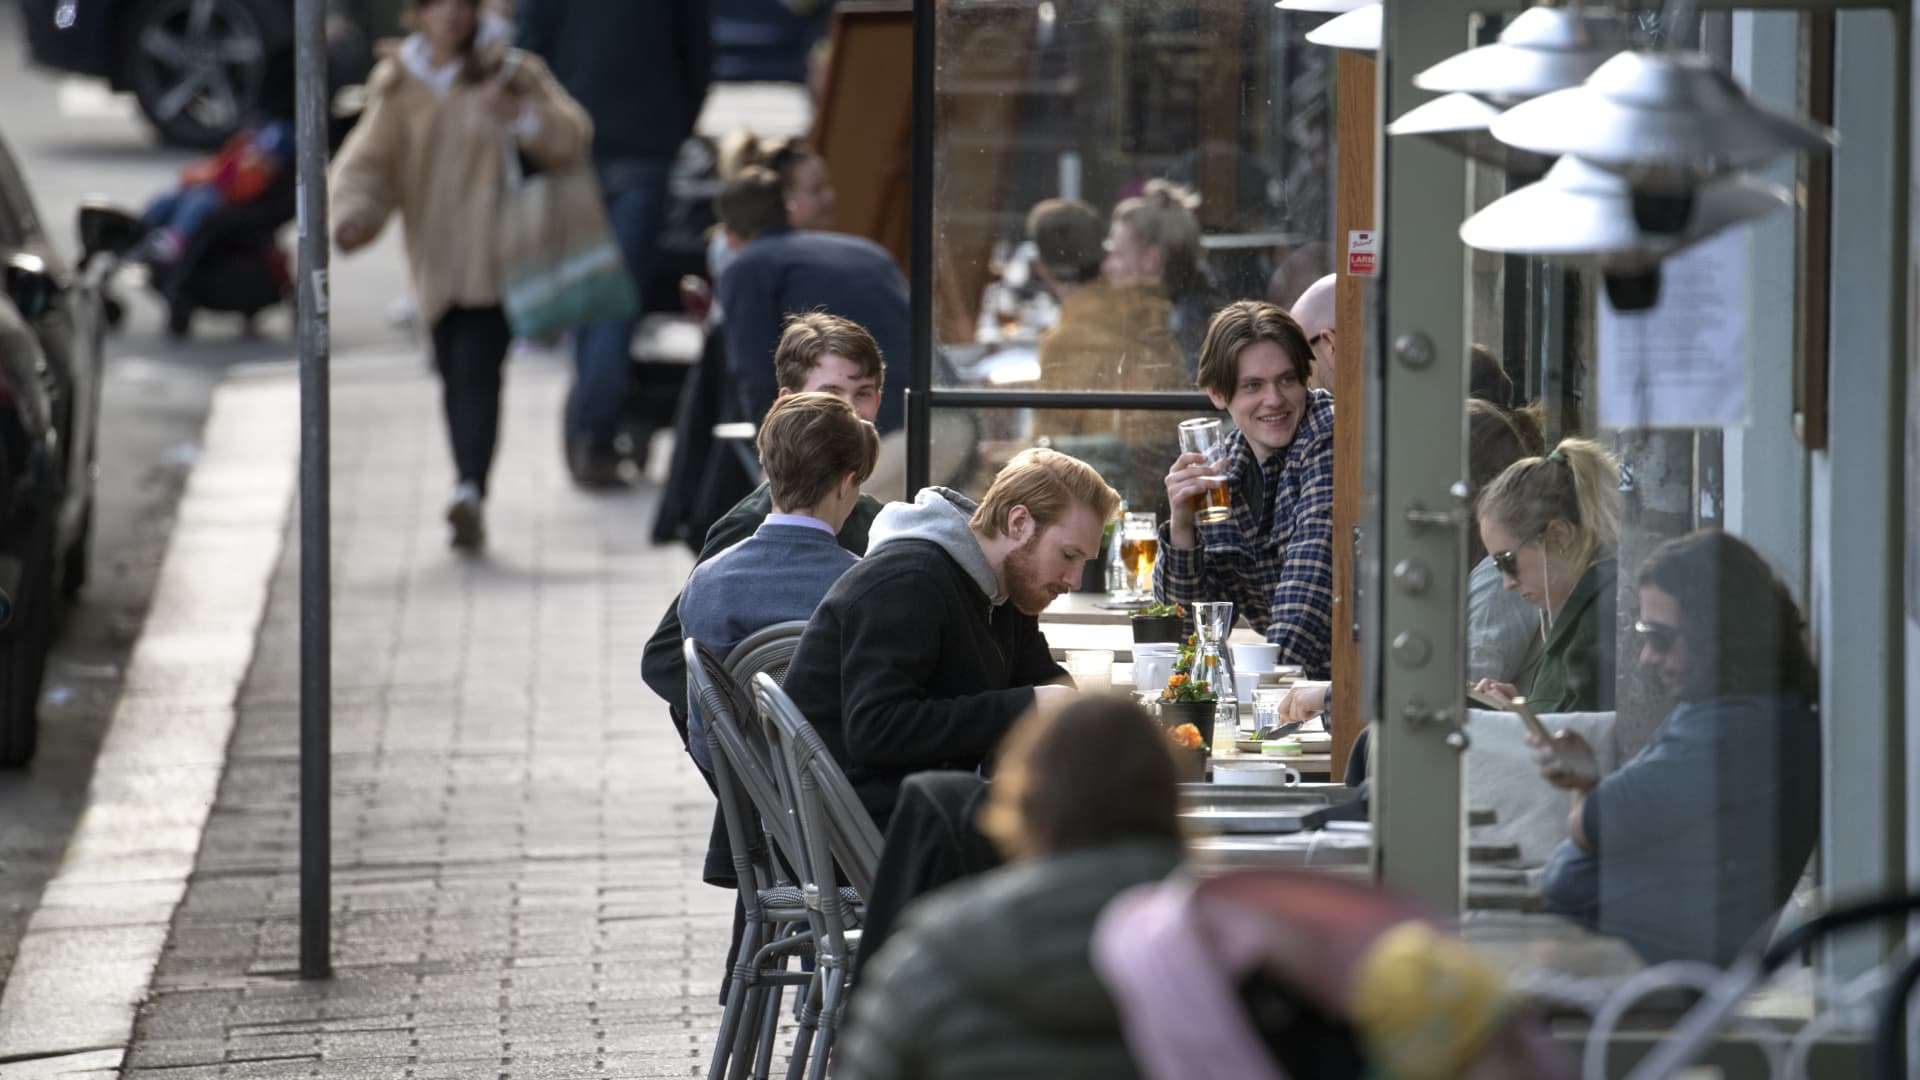 People enjoy themselves at an outdoor restaruant, amid the coronavirus disease (COVID-19) outbreak, in central Stockholm, Sweden, on April 20, 2020.